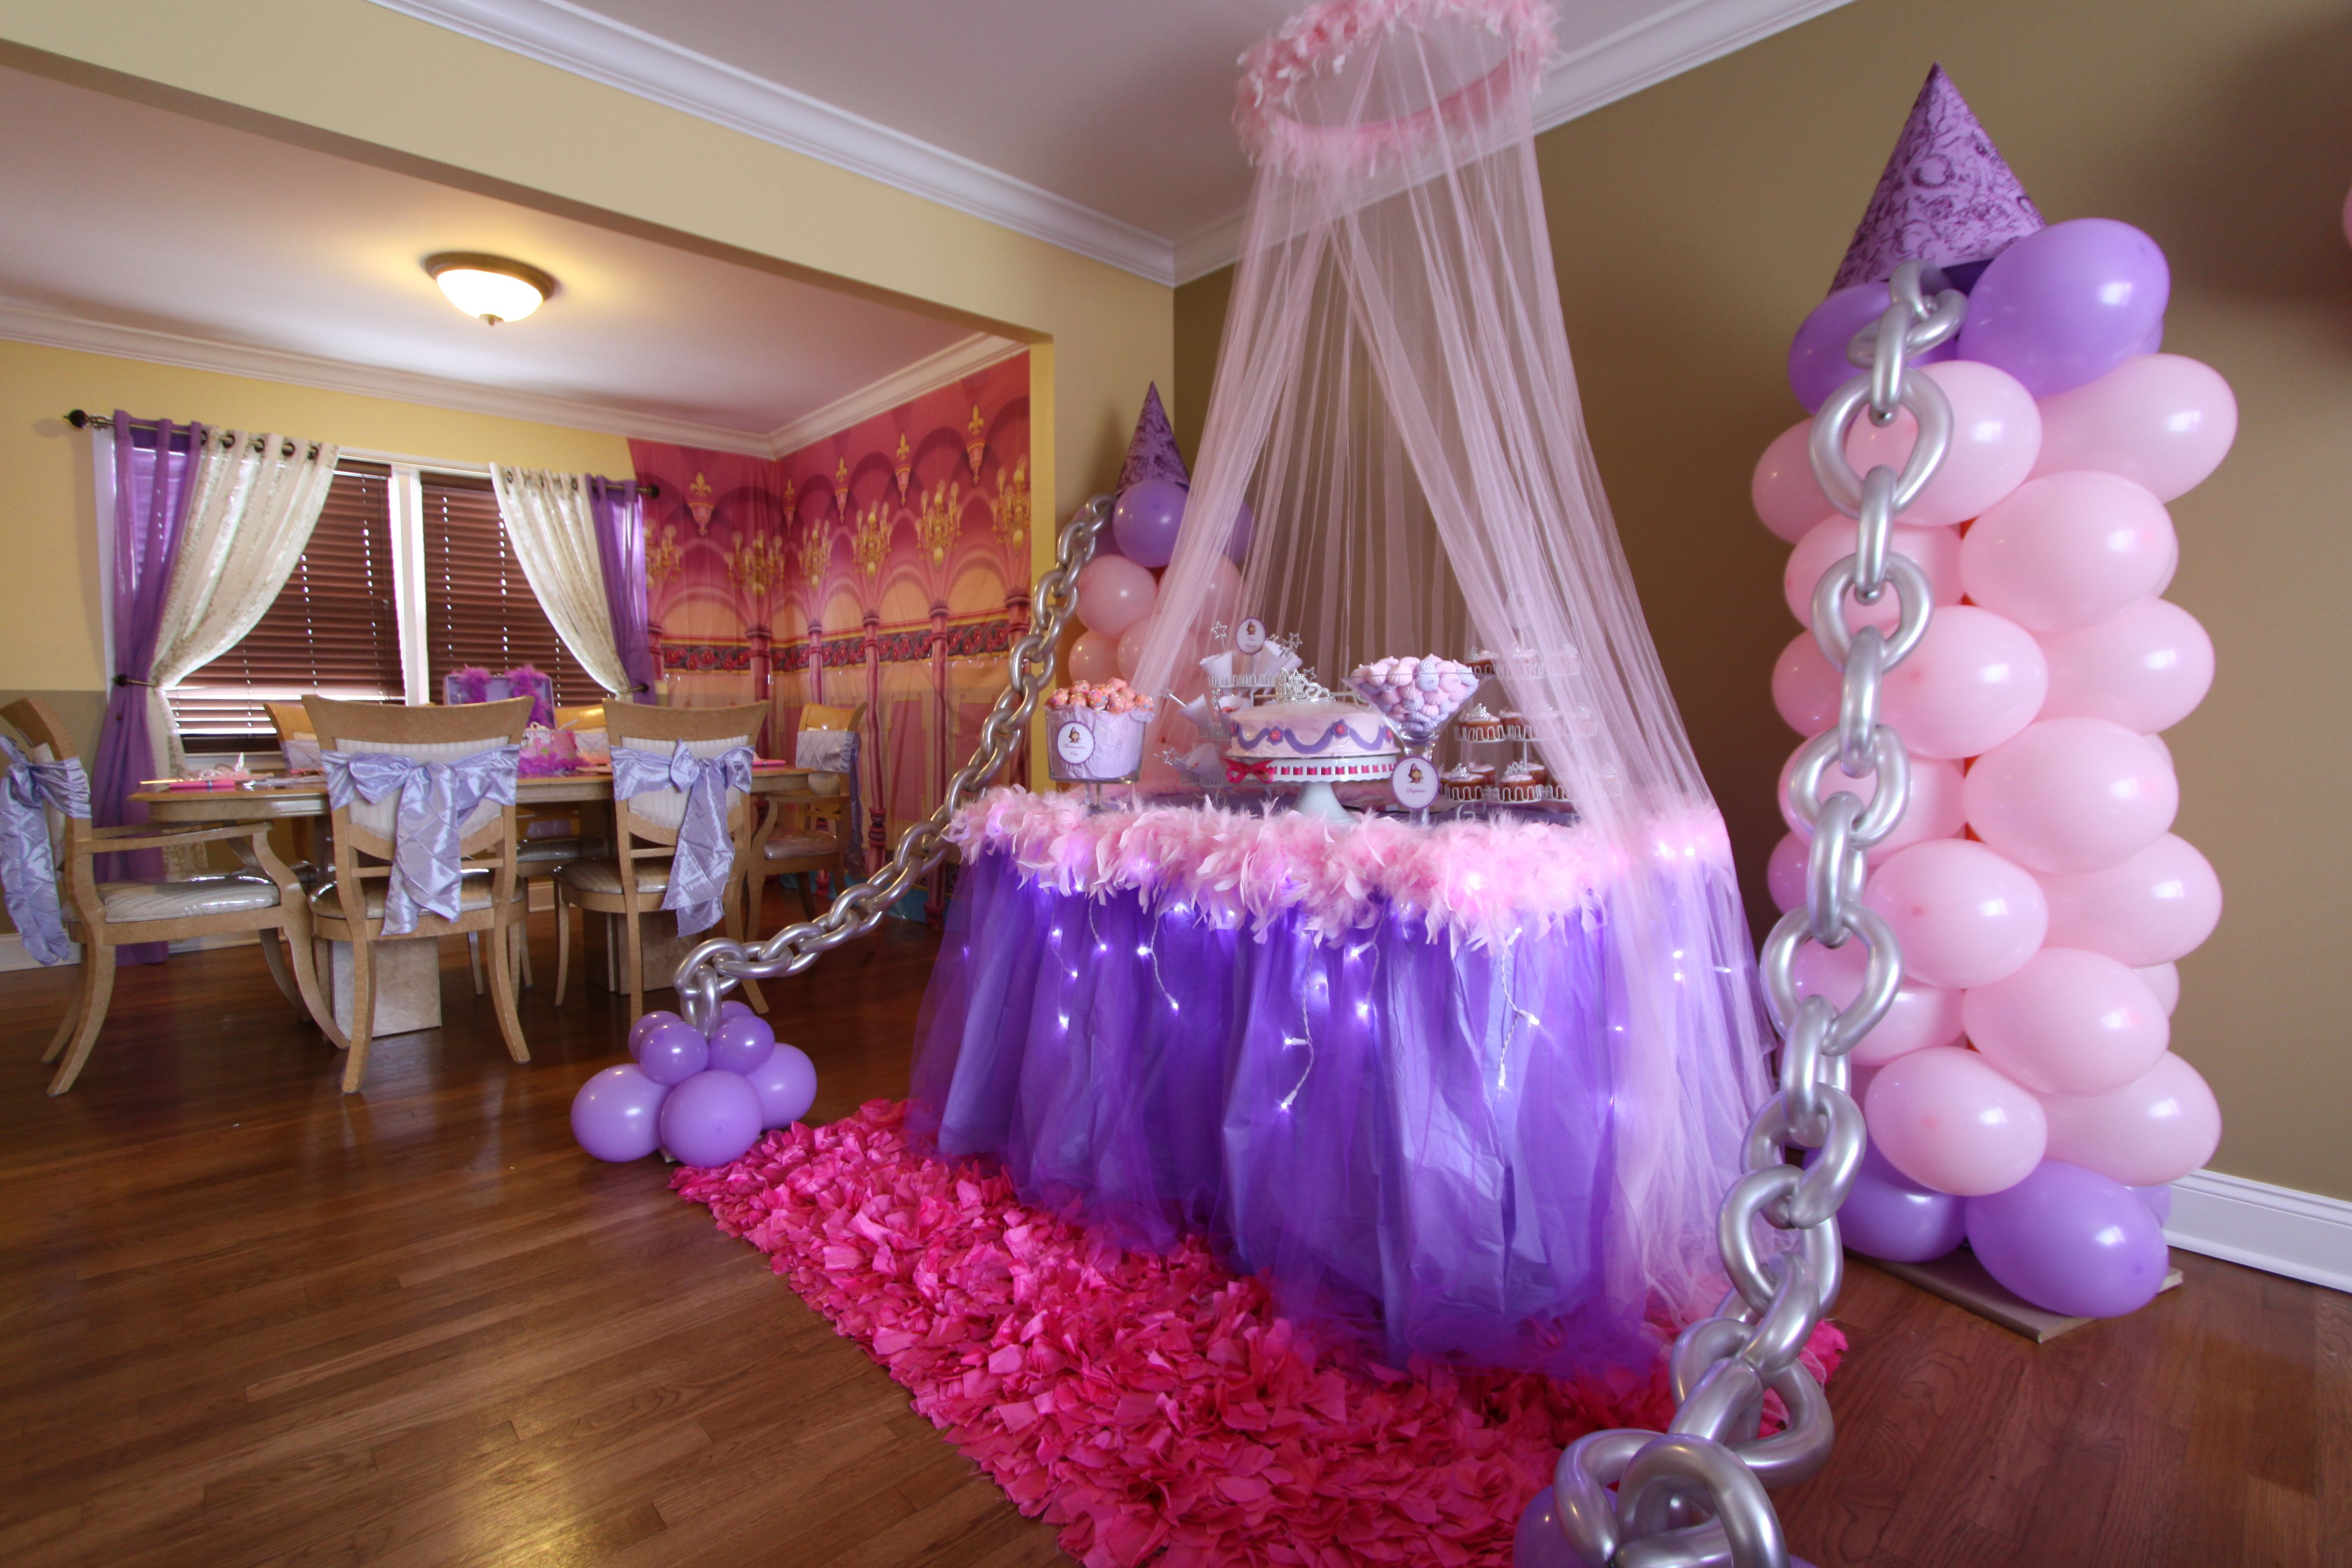 Balloon decor by front window and tulle with lights around for Balloon decoration for parties